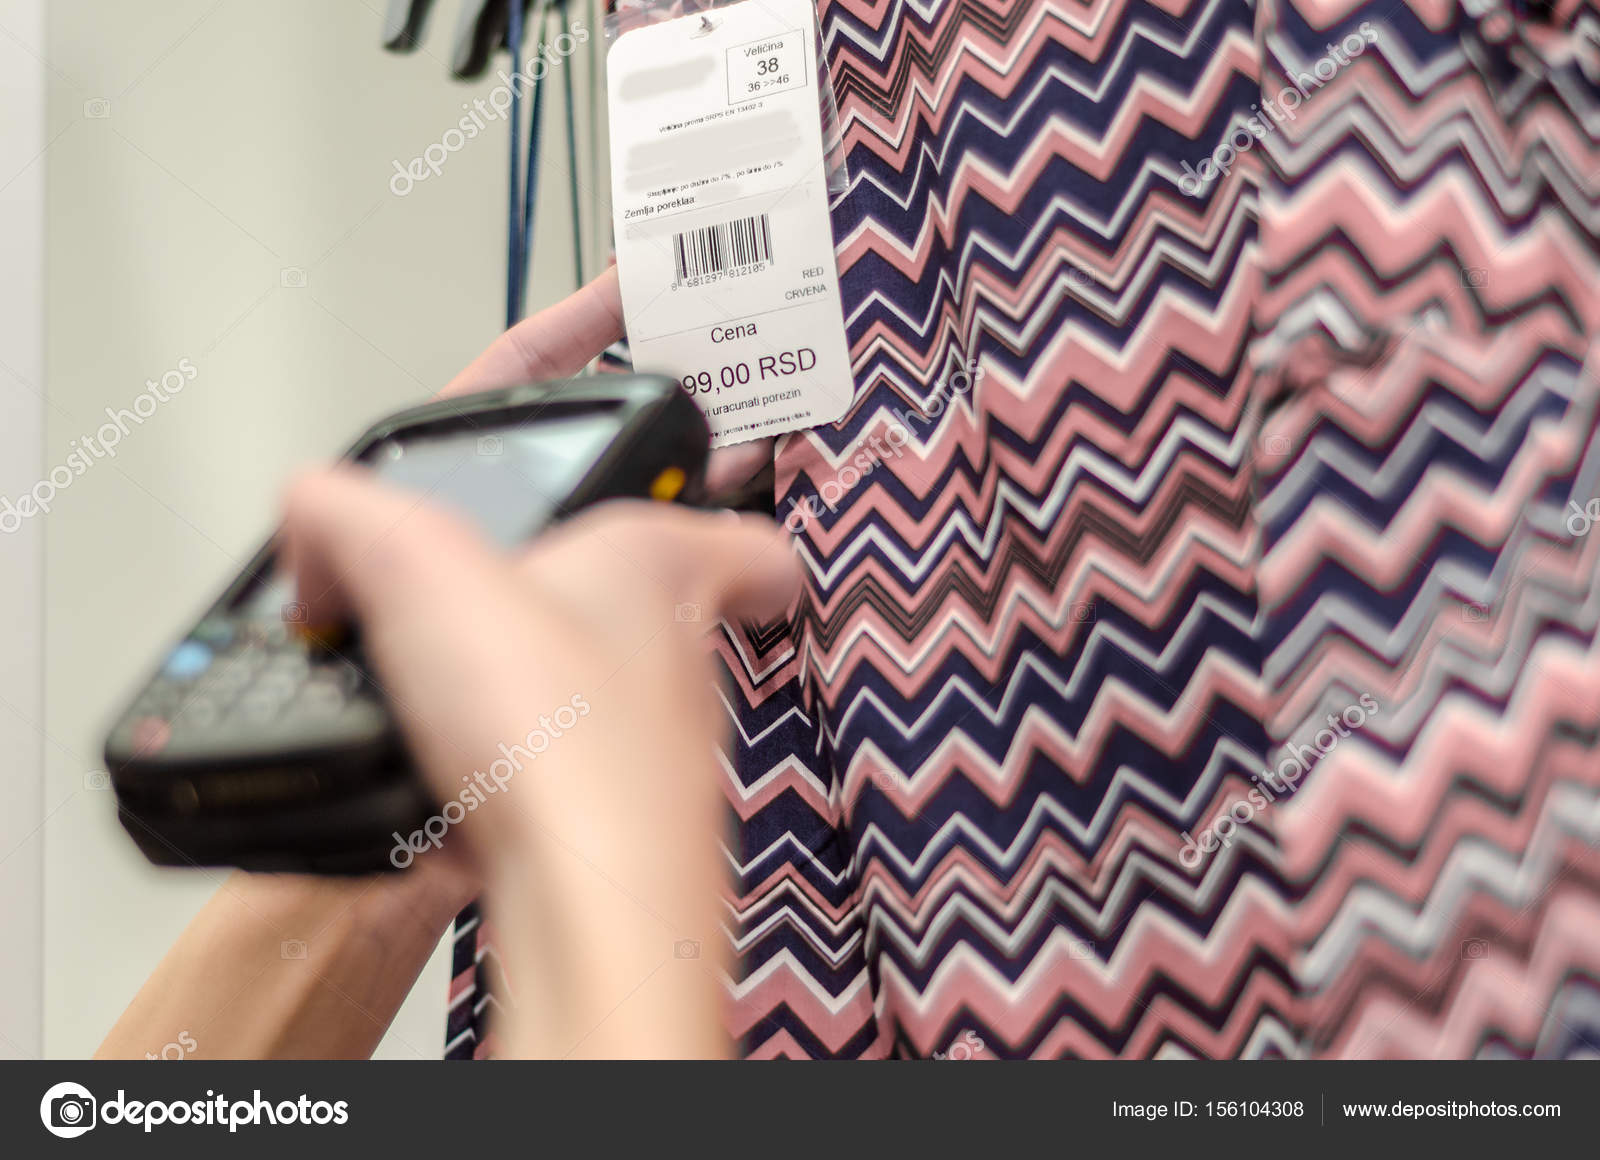 Worker Holding Device Reducing Price Bar Code Scanner